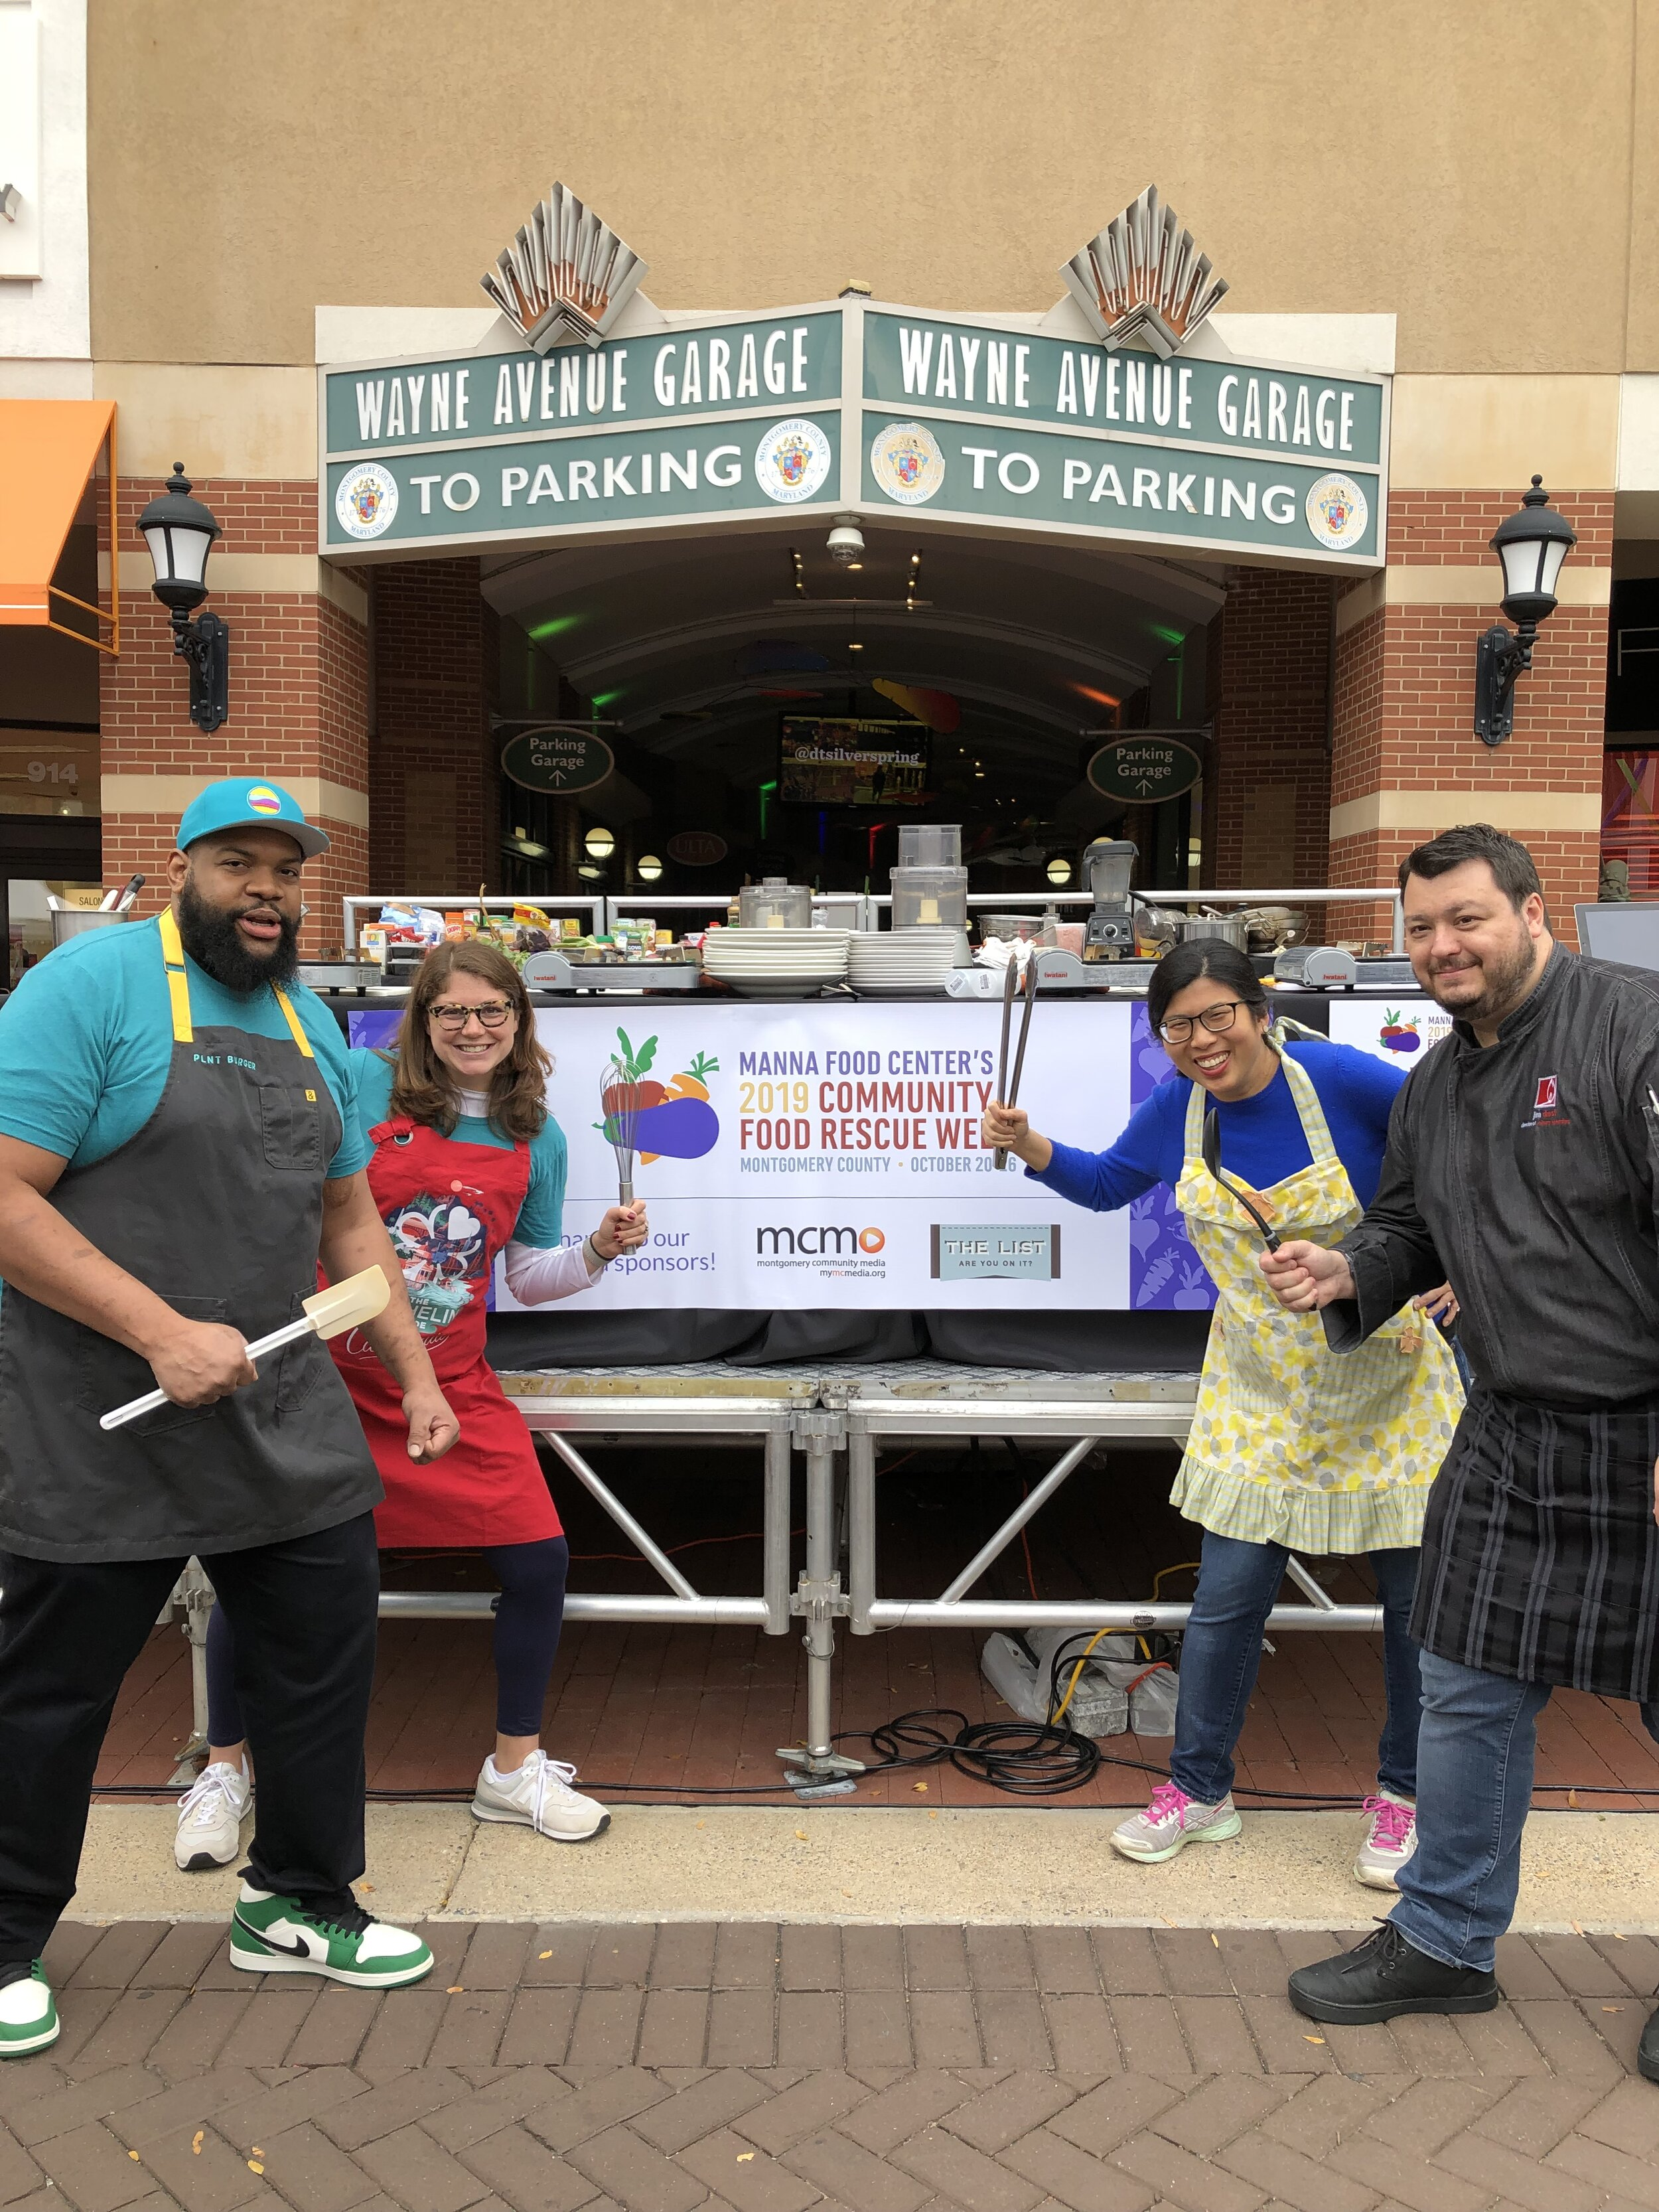 Contestants Chef Bryan Lacayo, Kyley McGeeney, Linda Wang and Jim Drost faced off at the No Waste Big Taste competition.